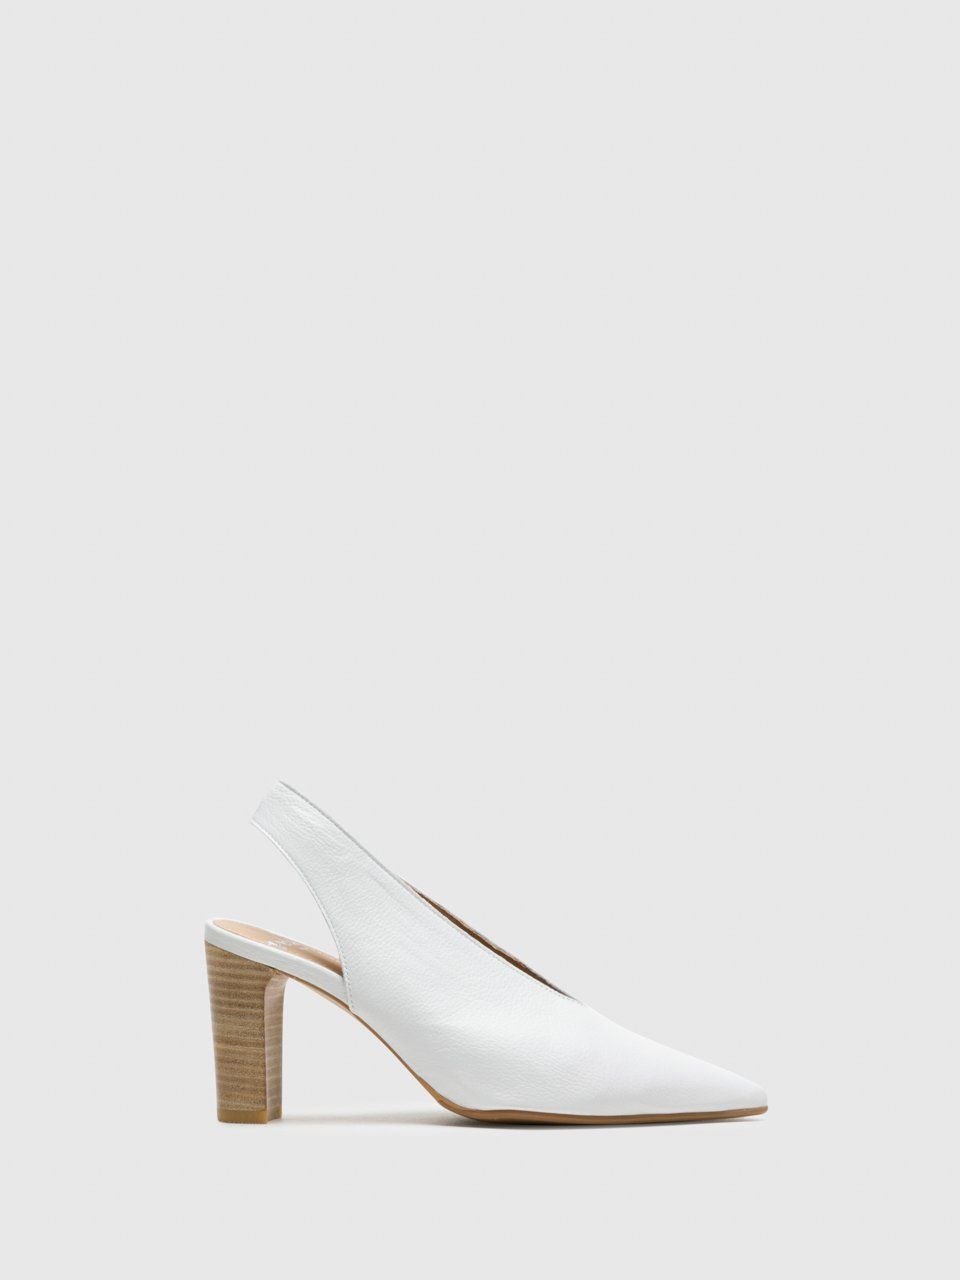 Perlato White Sling-Back Pumps Shoes